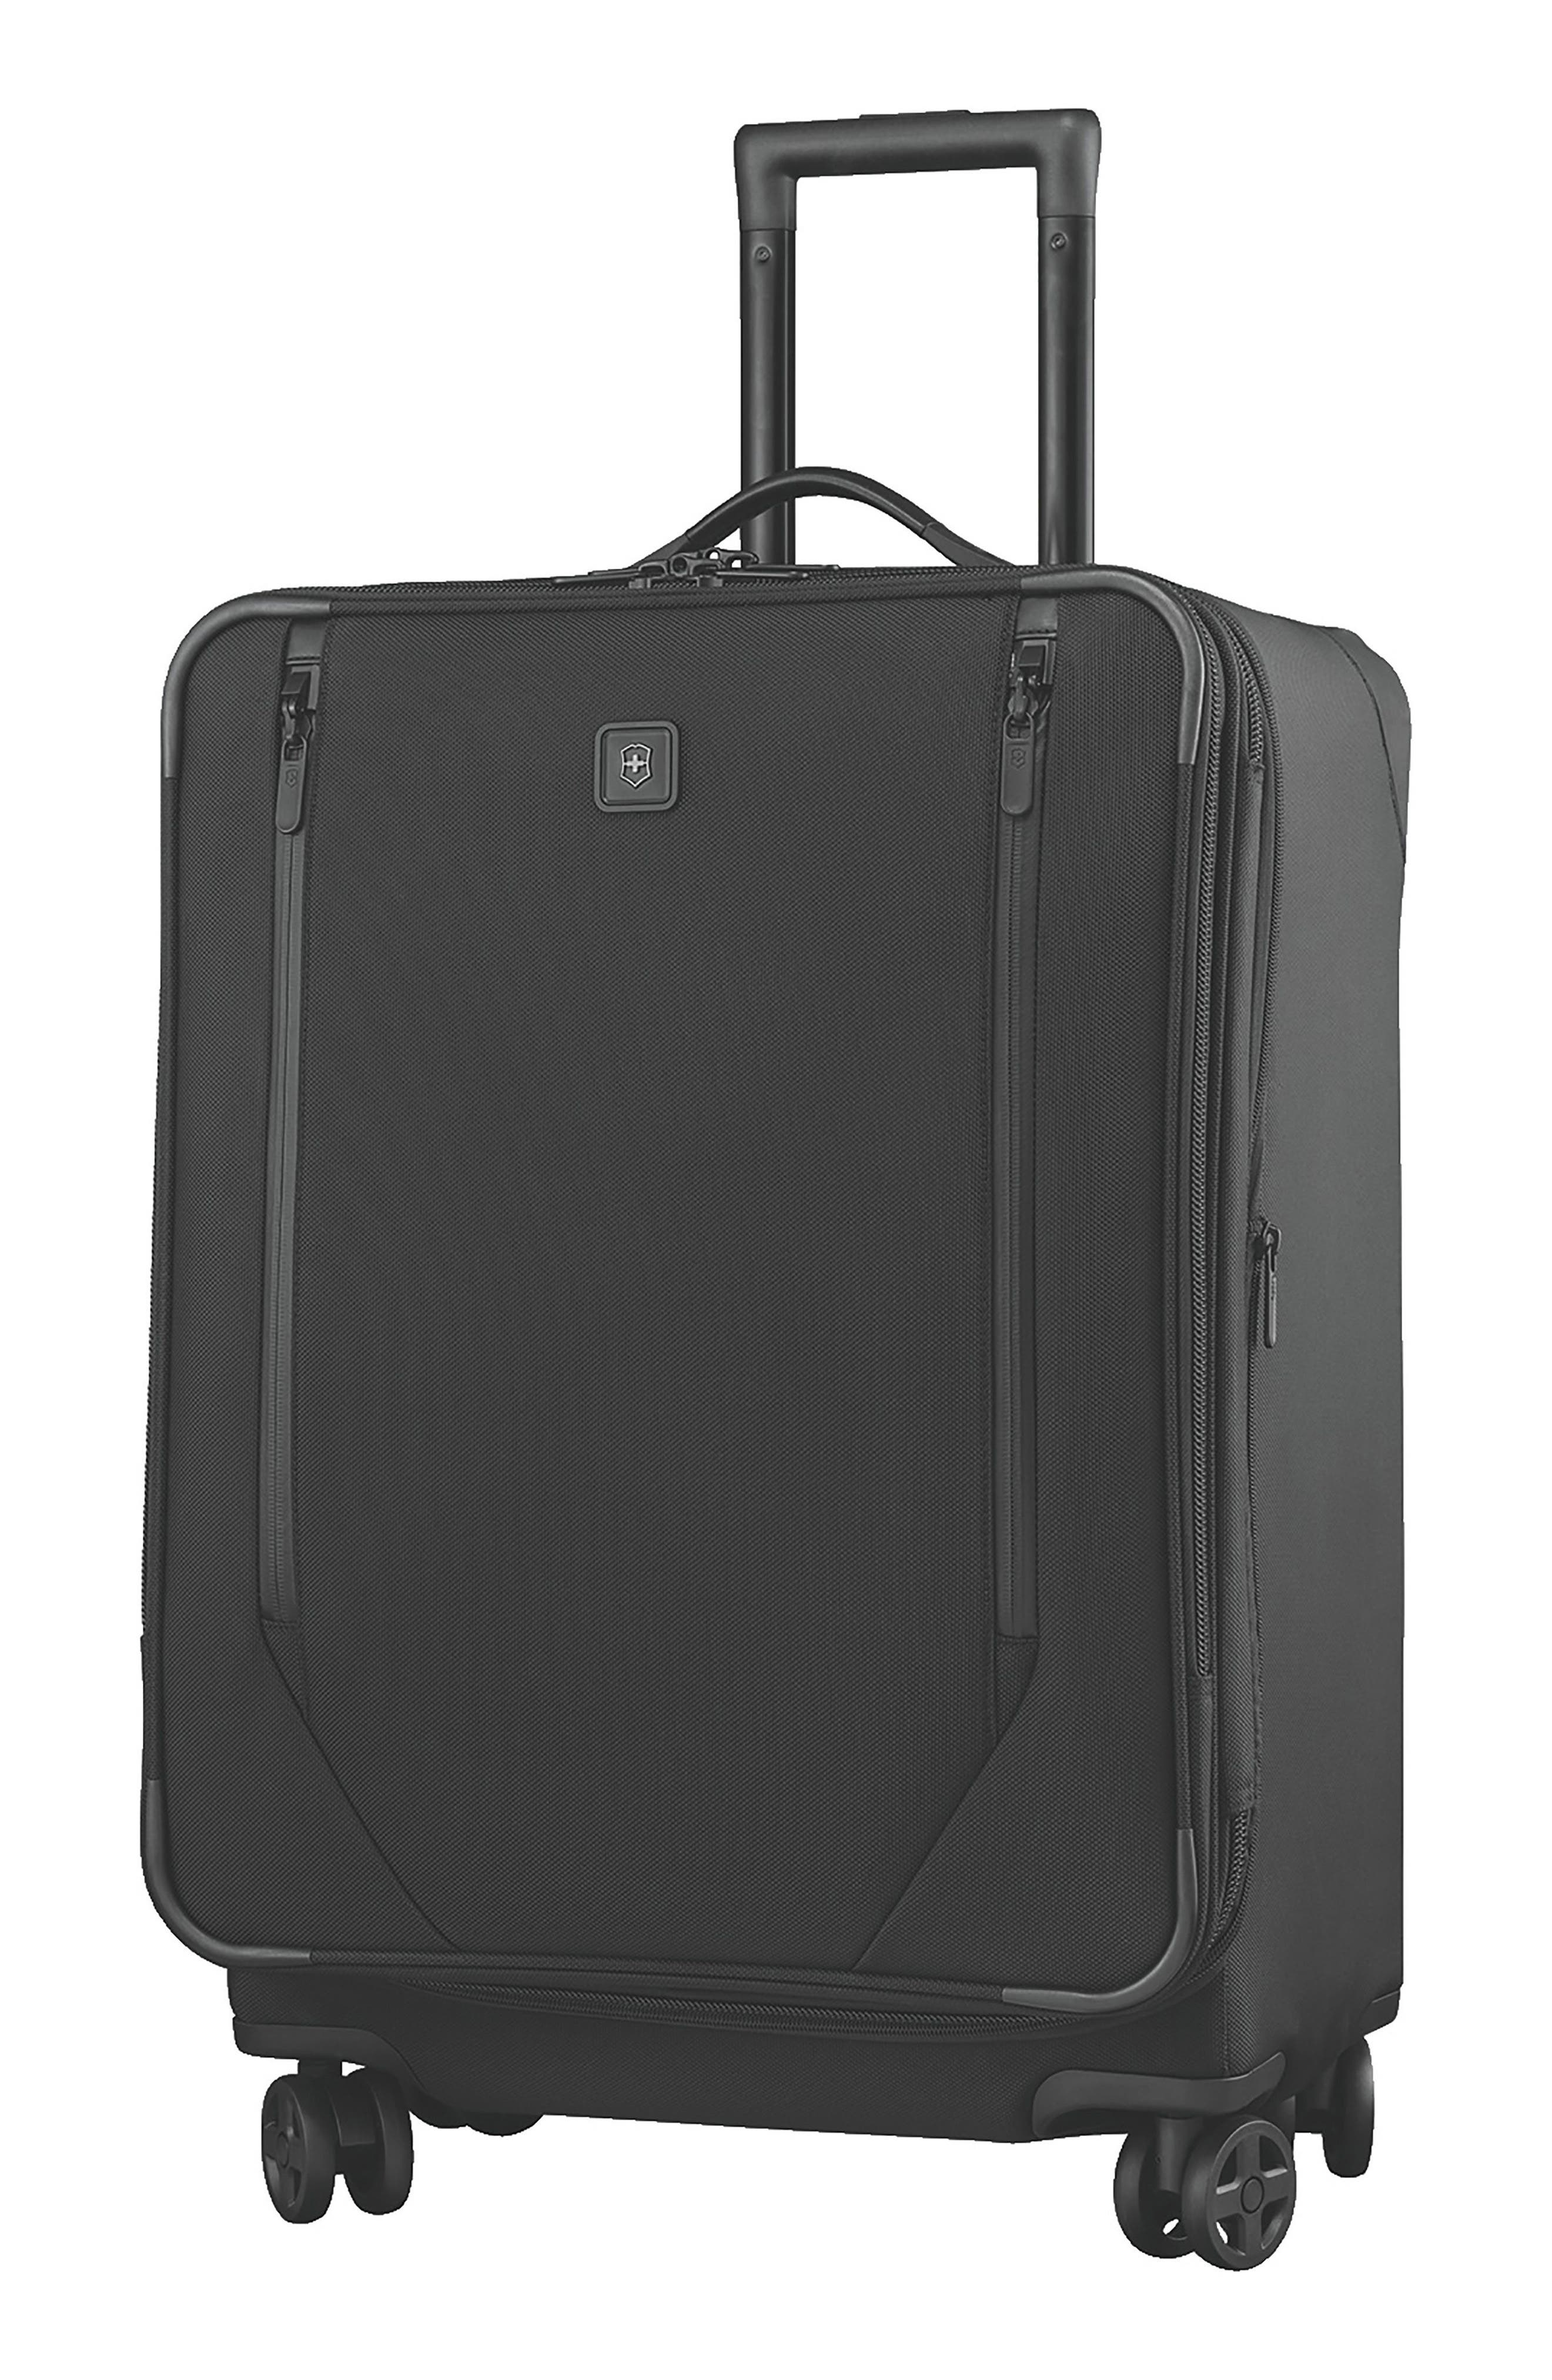 Lexicon 2.0 26-Inch Wheeled Suitcase,                         Main,                         color, Black